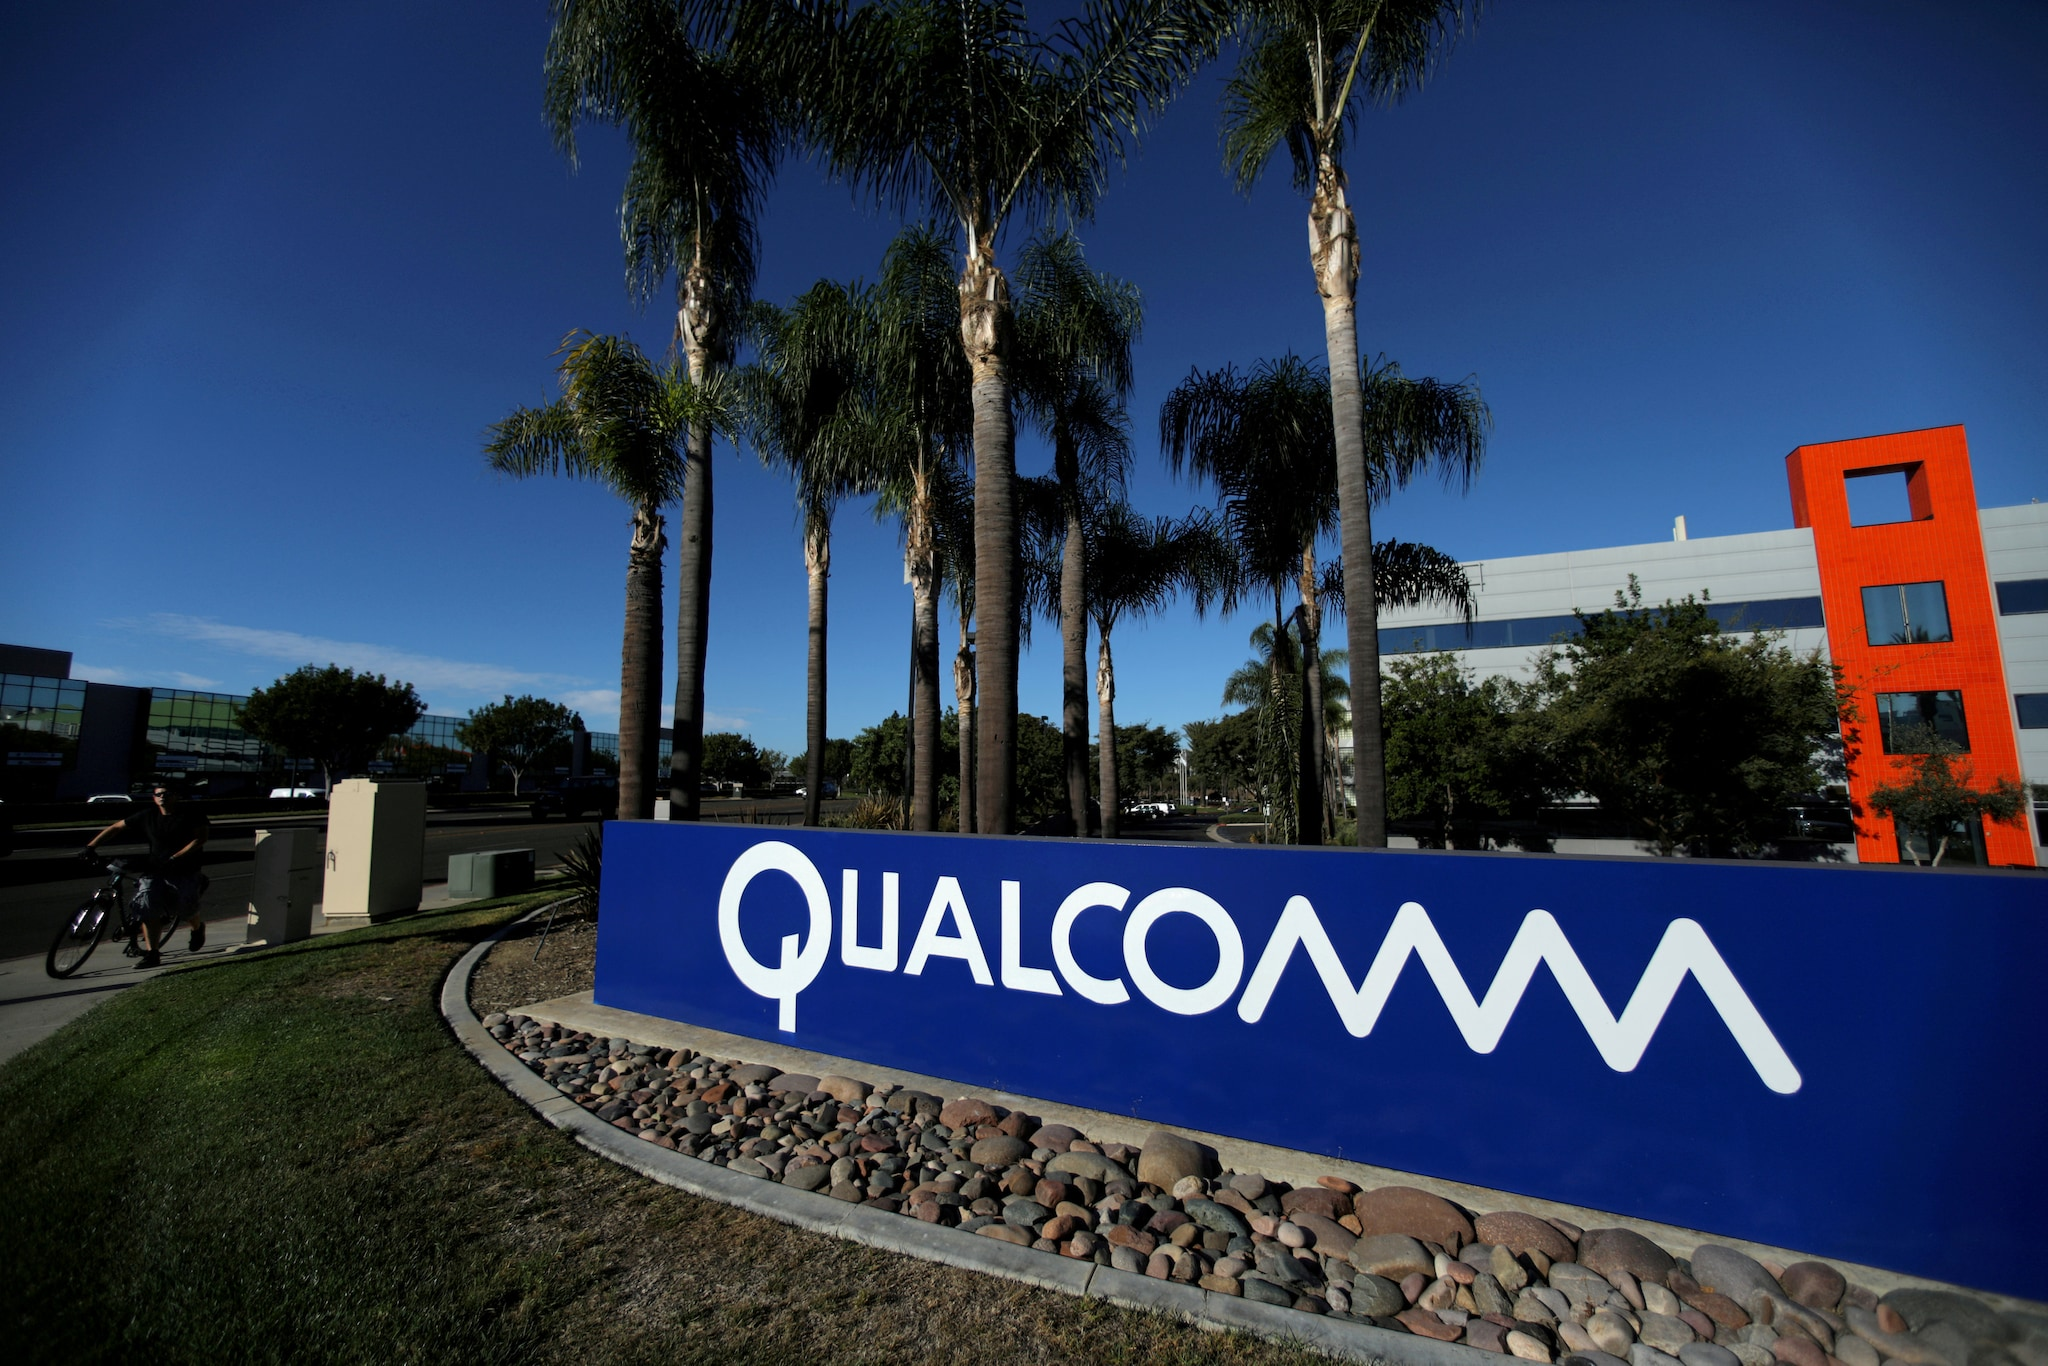 25. Qualcomm: Qualcomm is a US-based multinational telecommunications equipment company that designs and markets wireless telecommunications products and services. (Image: Reuters)